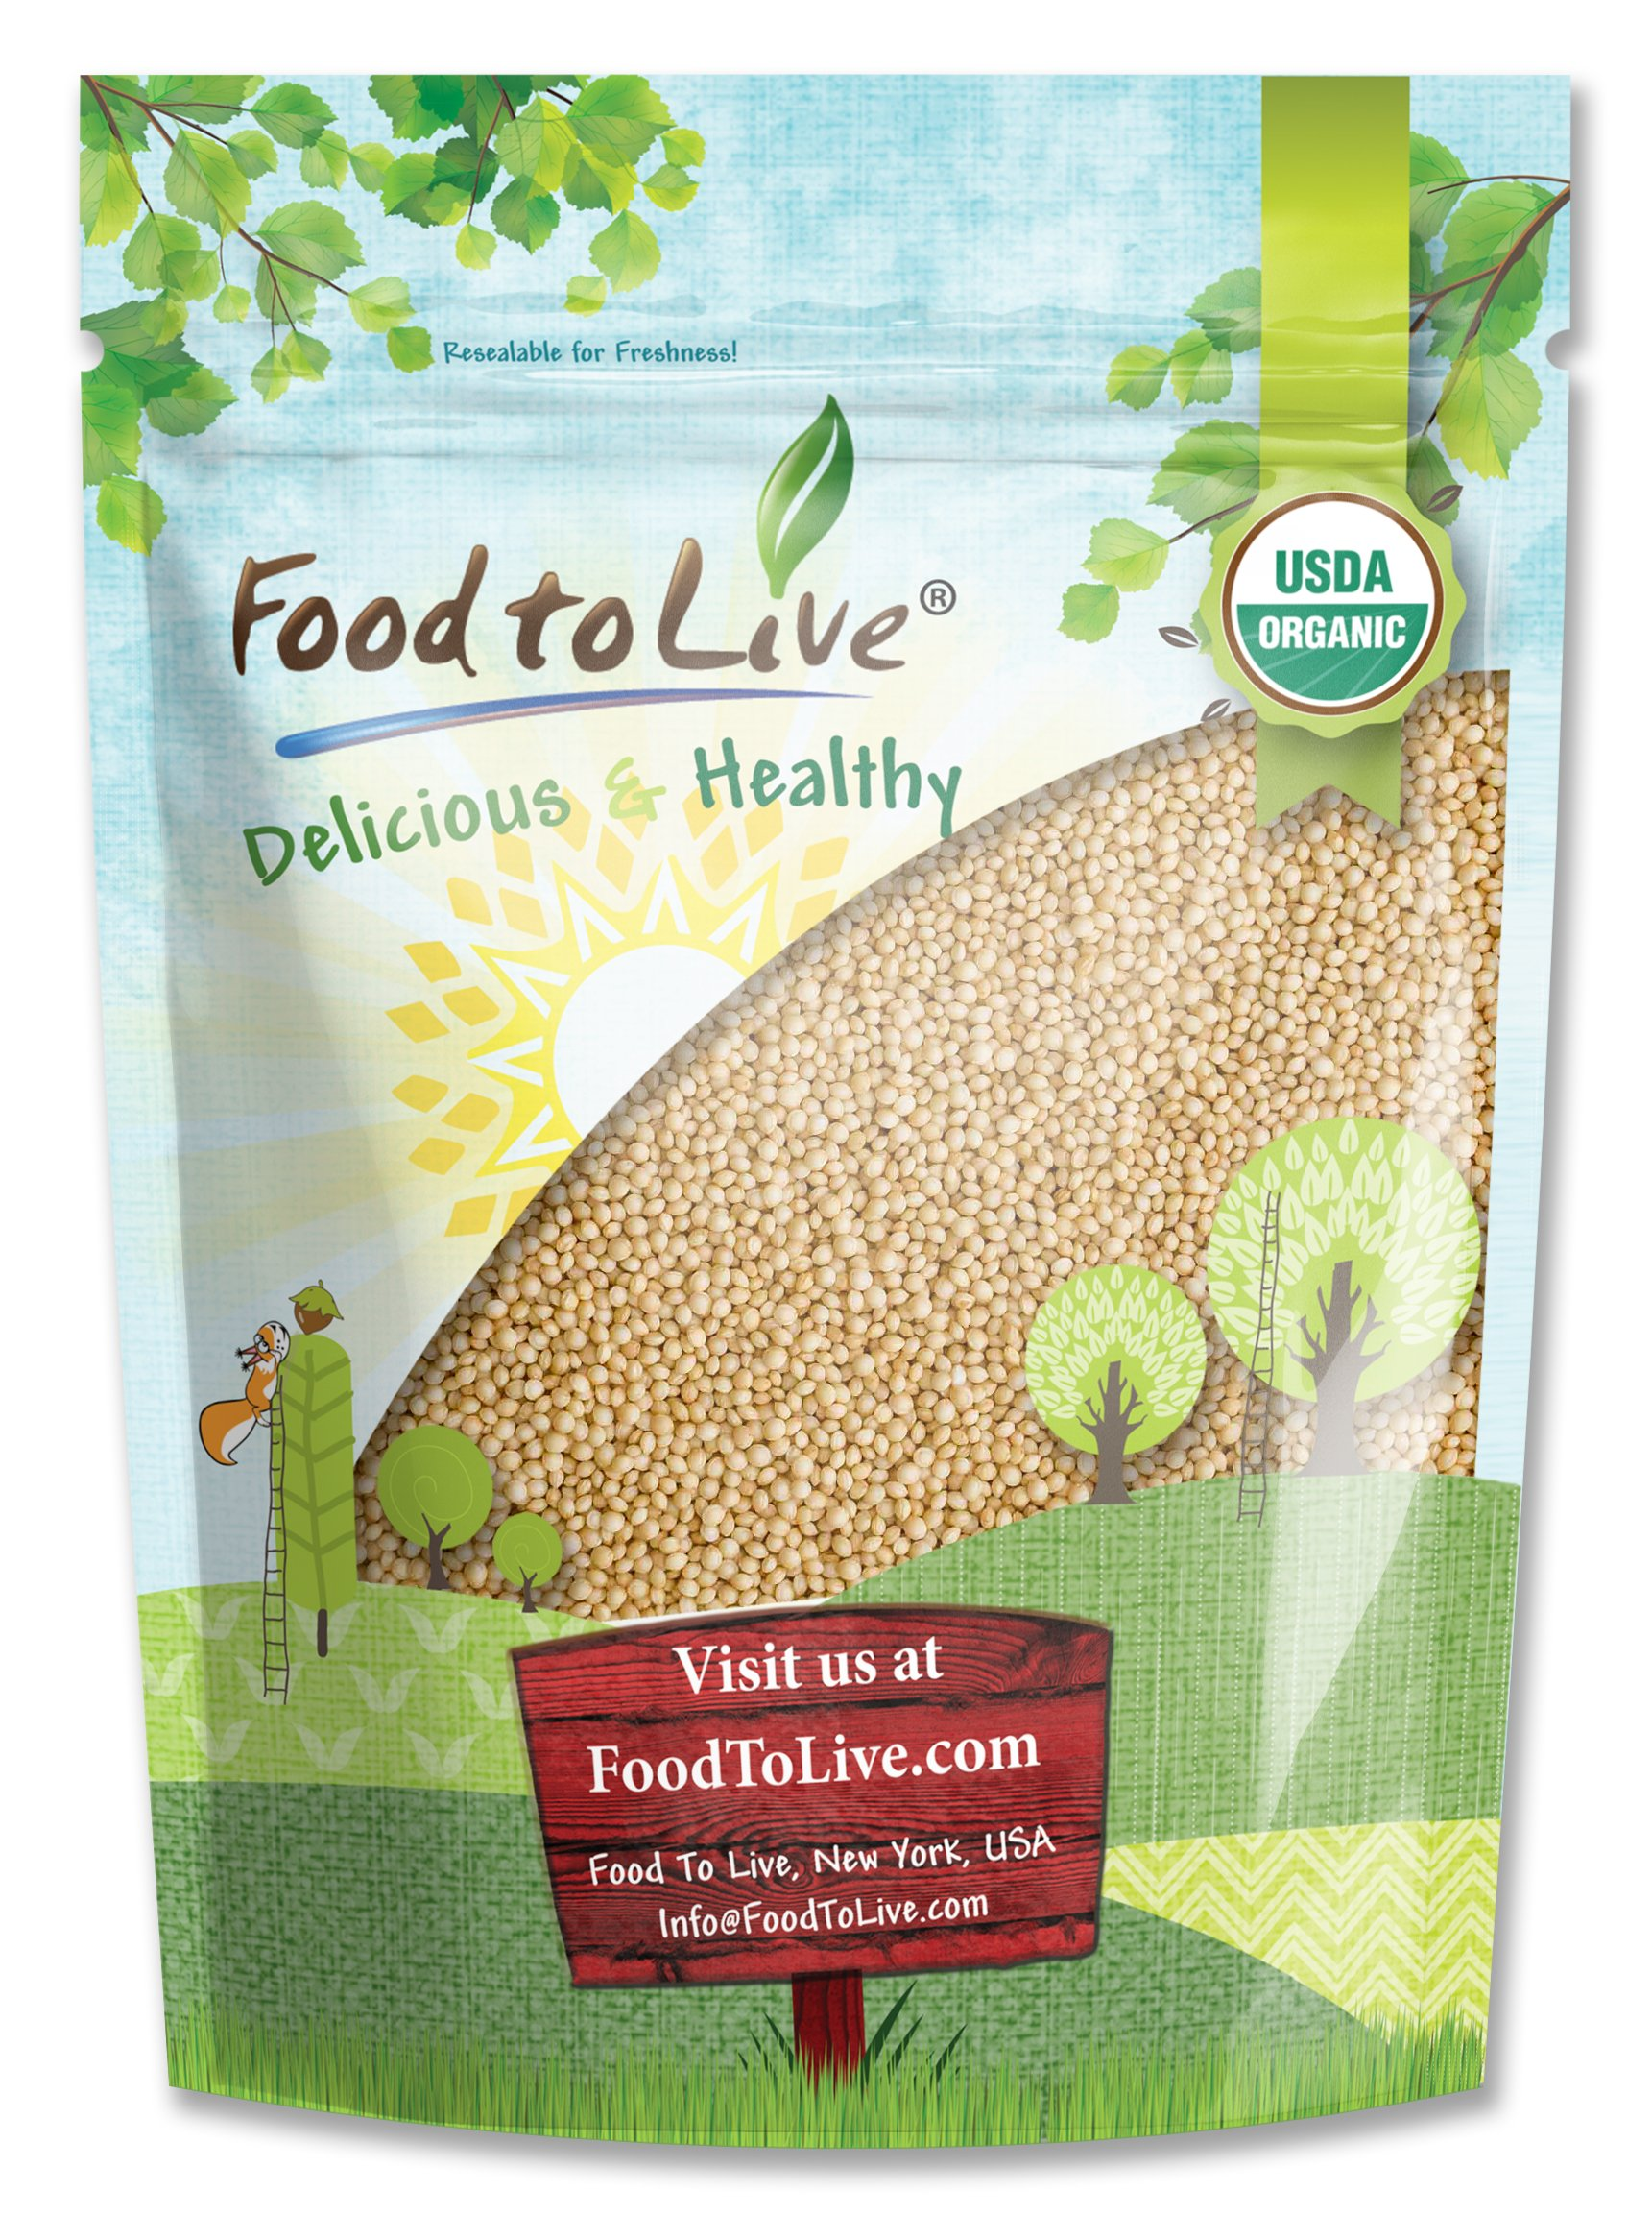 Food to Live Certified Organic Amaranth Grain (Whole Seeds, Non-GMO, Kosher, Bulk) (1 Pound) by Food to Live